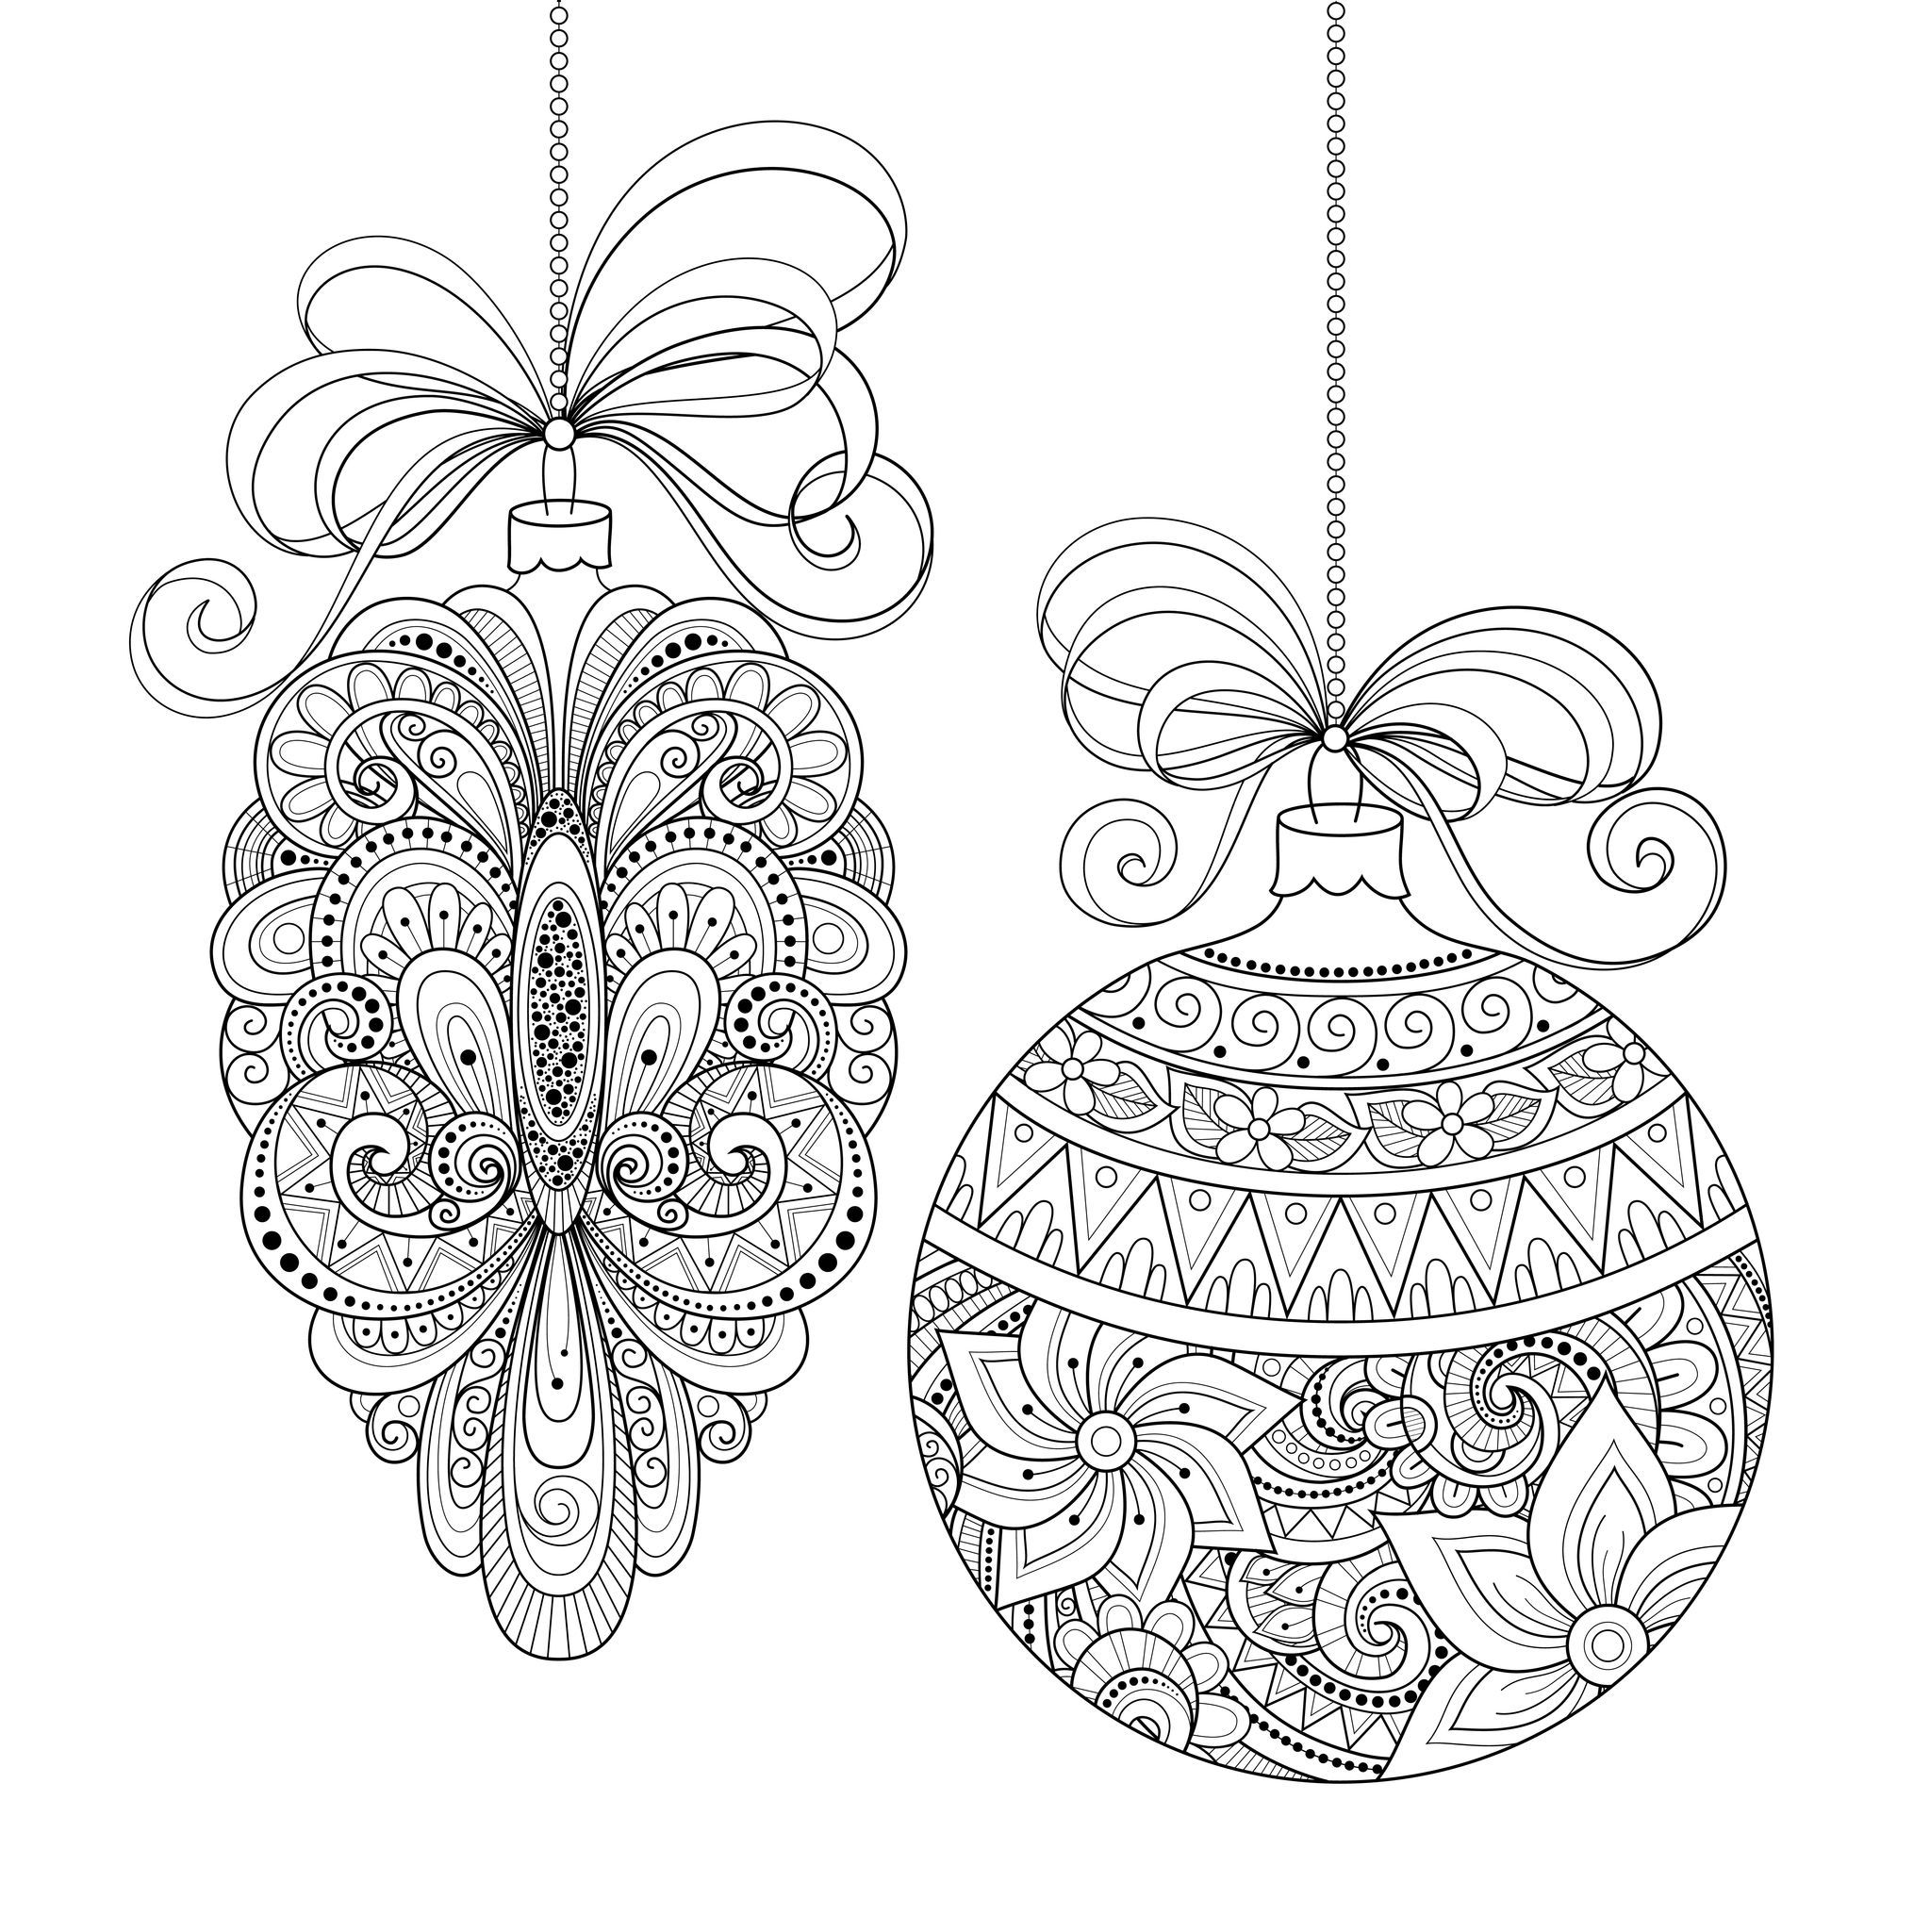 Christmas Coloring Pages For Adults Best Coloring Pages For Kids Christmas Ornament Coloring Page Coloring Pages Fancy Christmas Ornaments